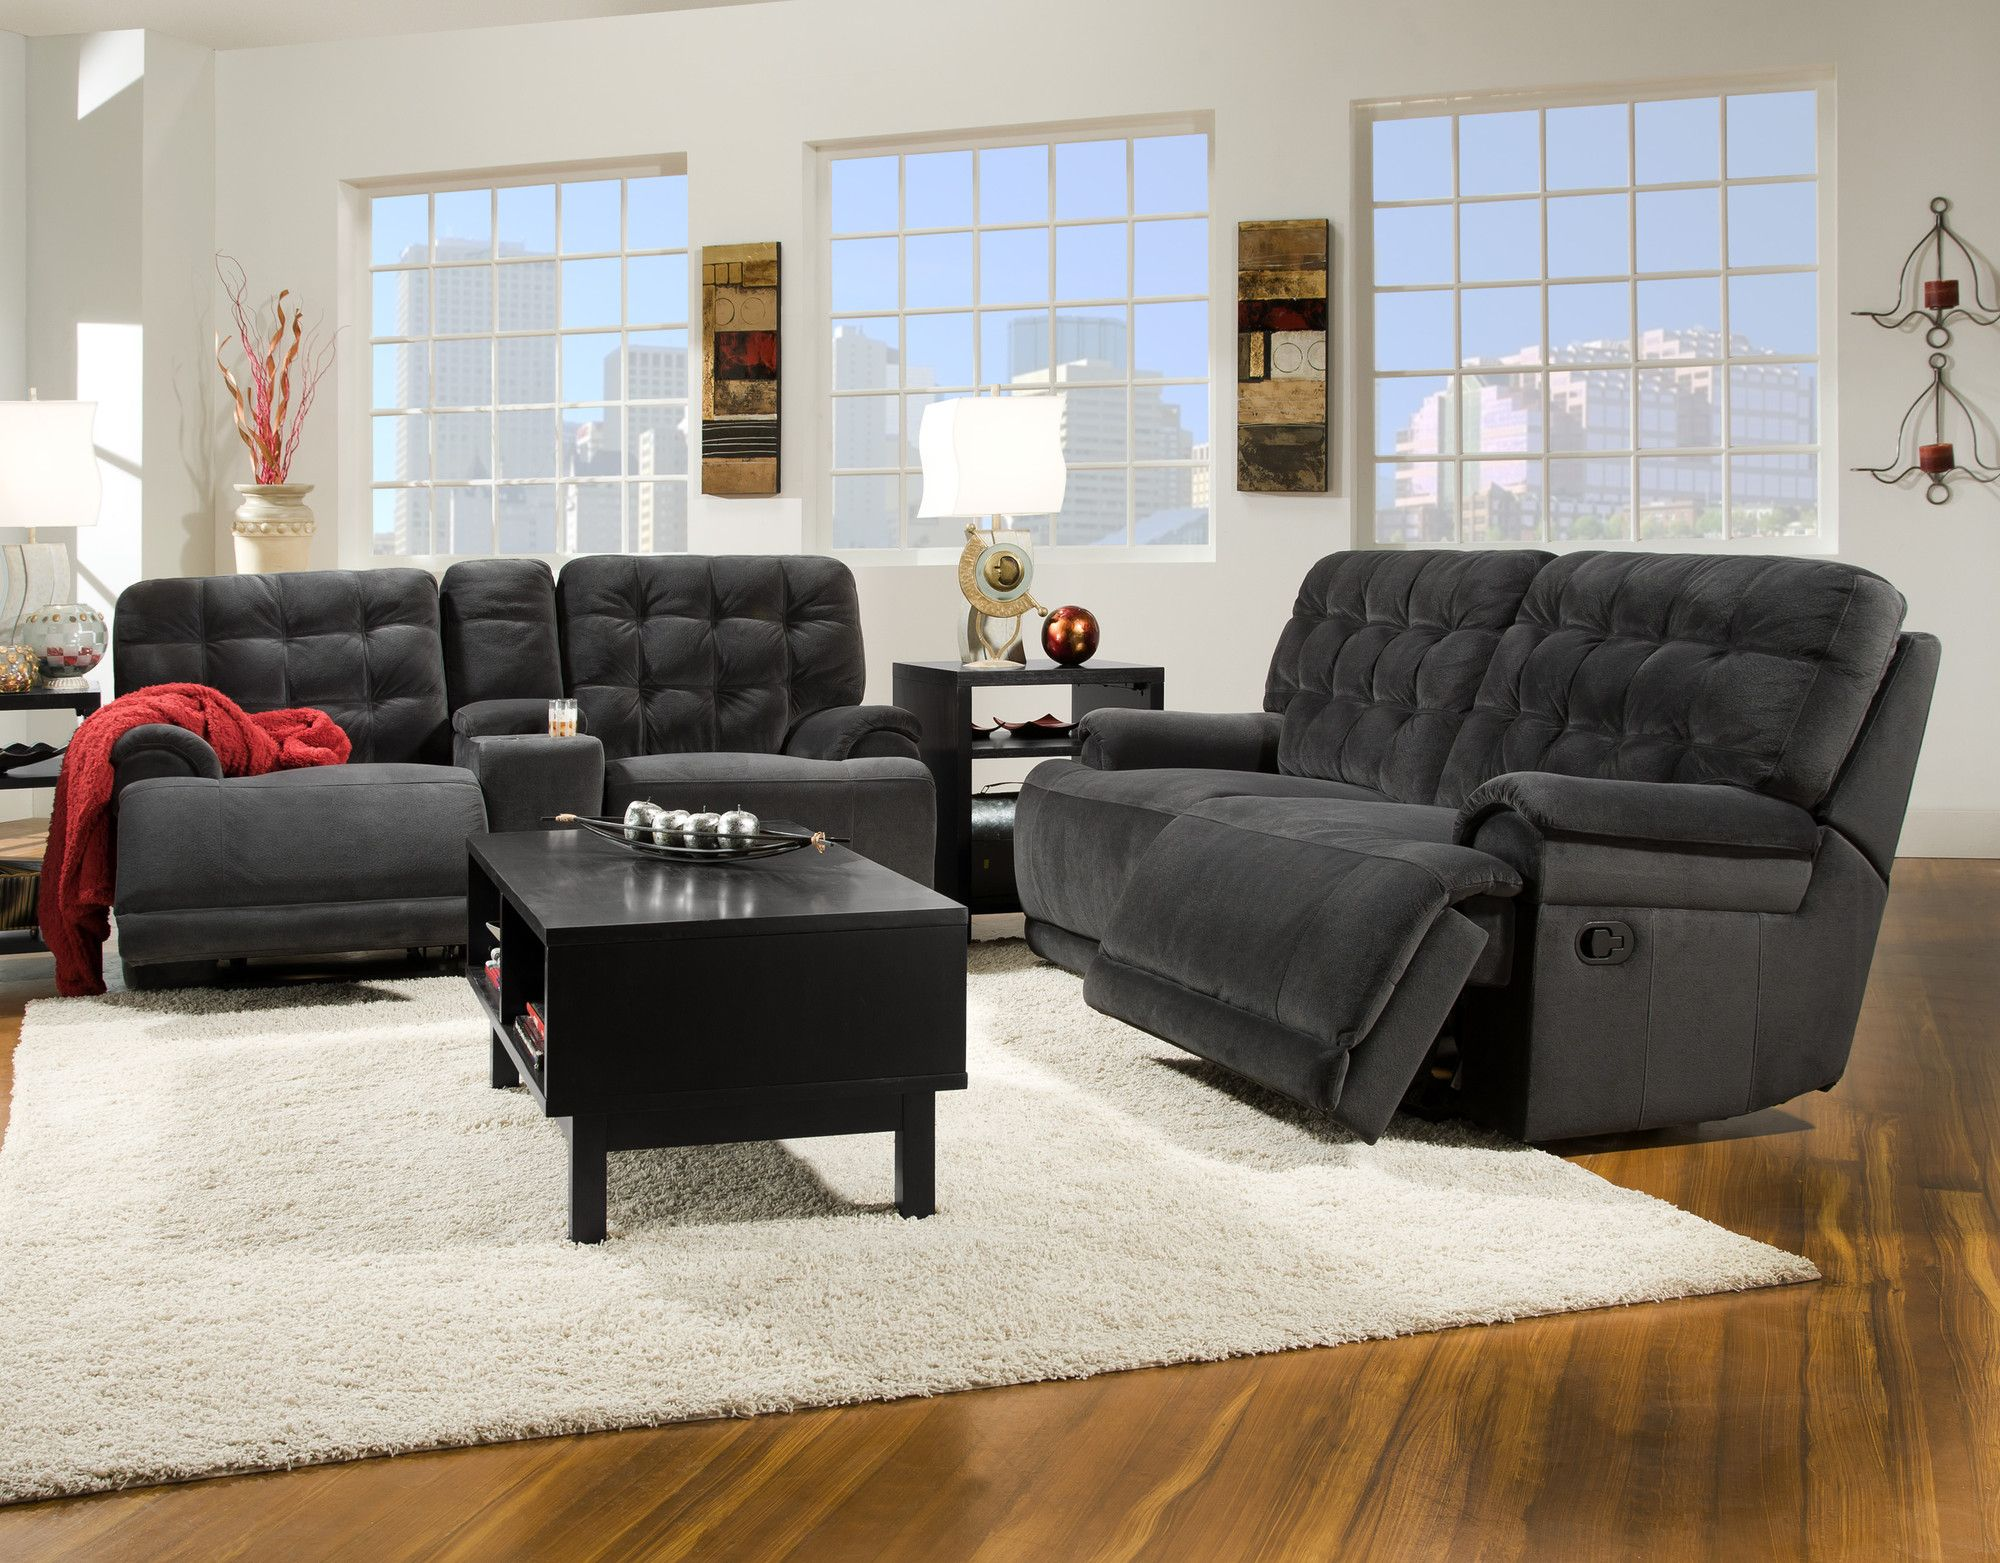 Toptip Liegestuhl Yacer Living Room Set Out